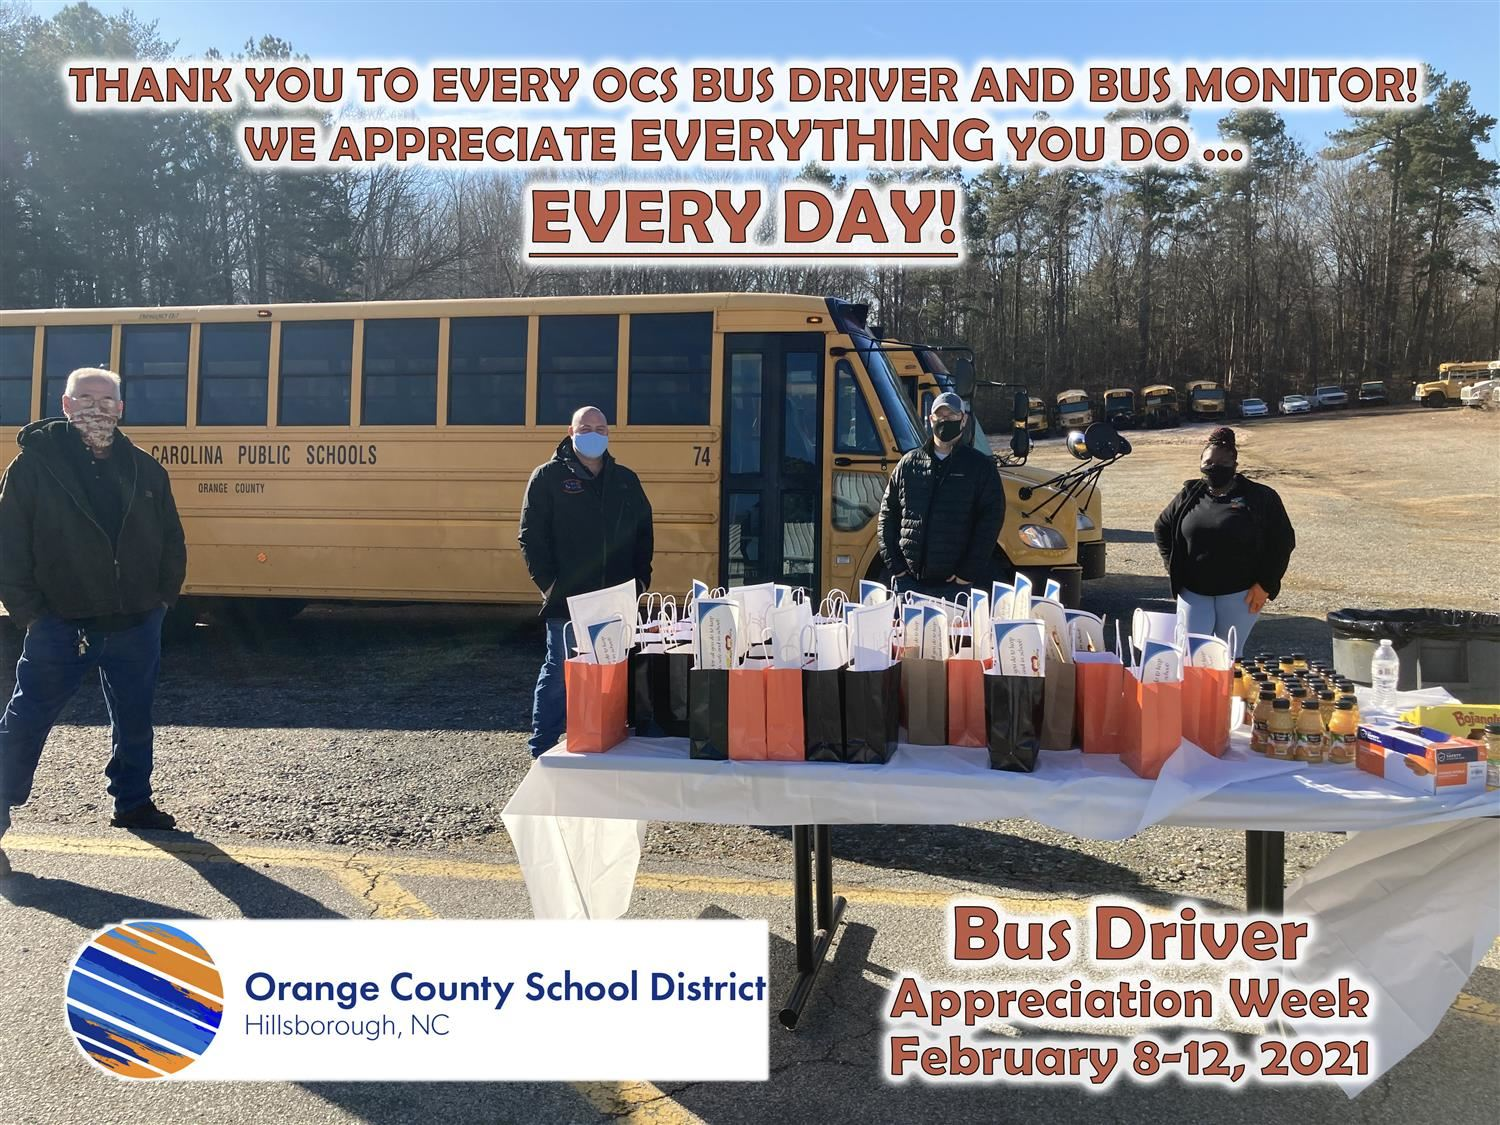 Thank you to bus drivers for Bus Driver Appreciation Week 2021